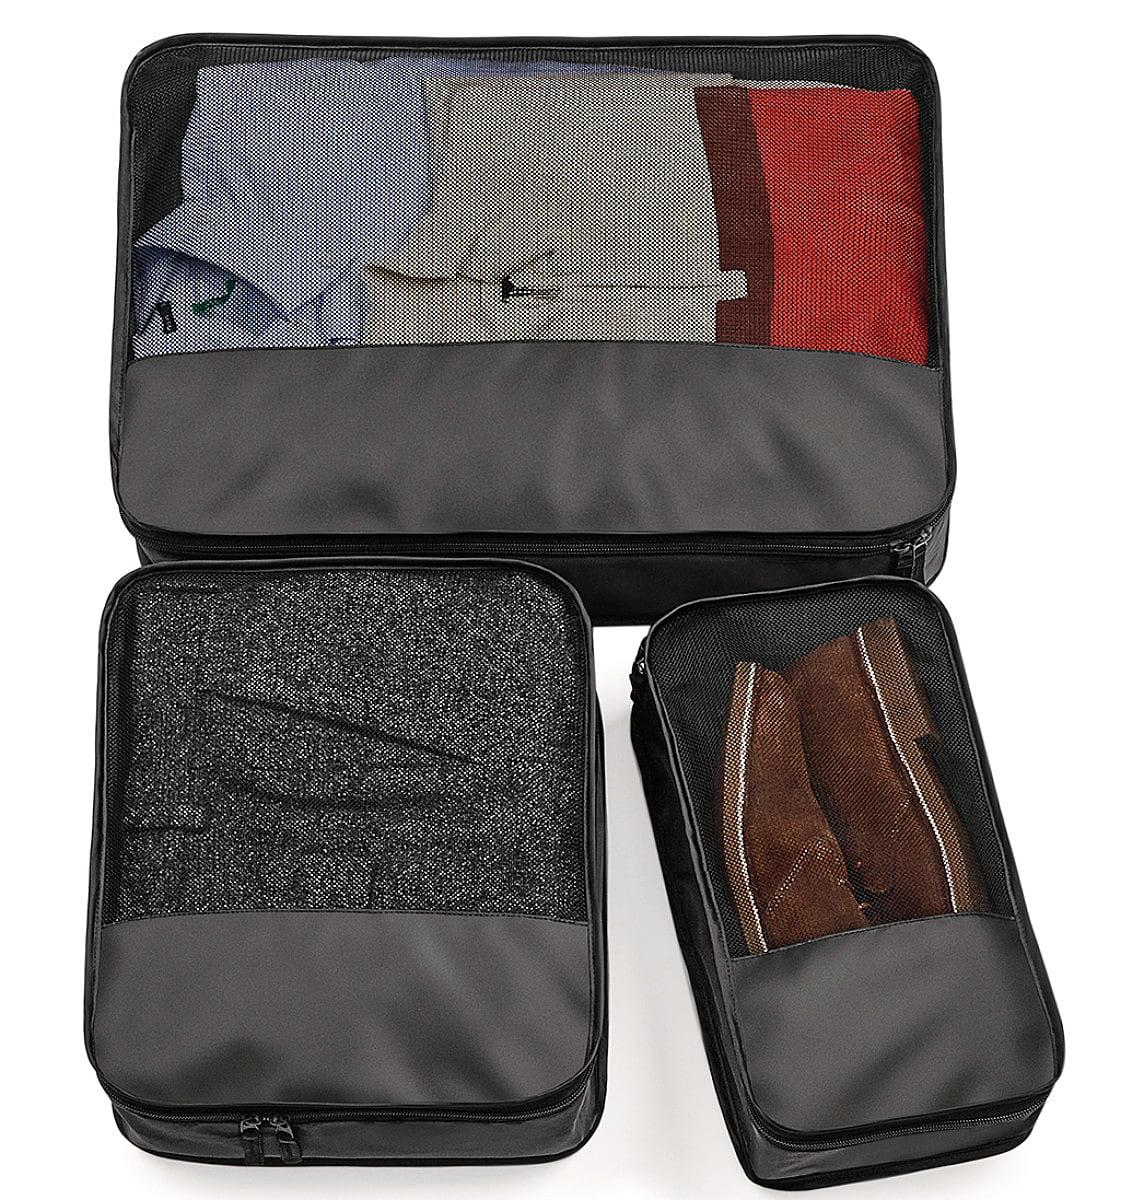 Bagbase Escape Packing Cube Set in Black (Product Code: BG459)